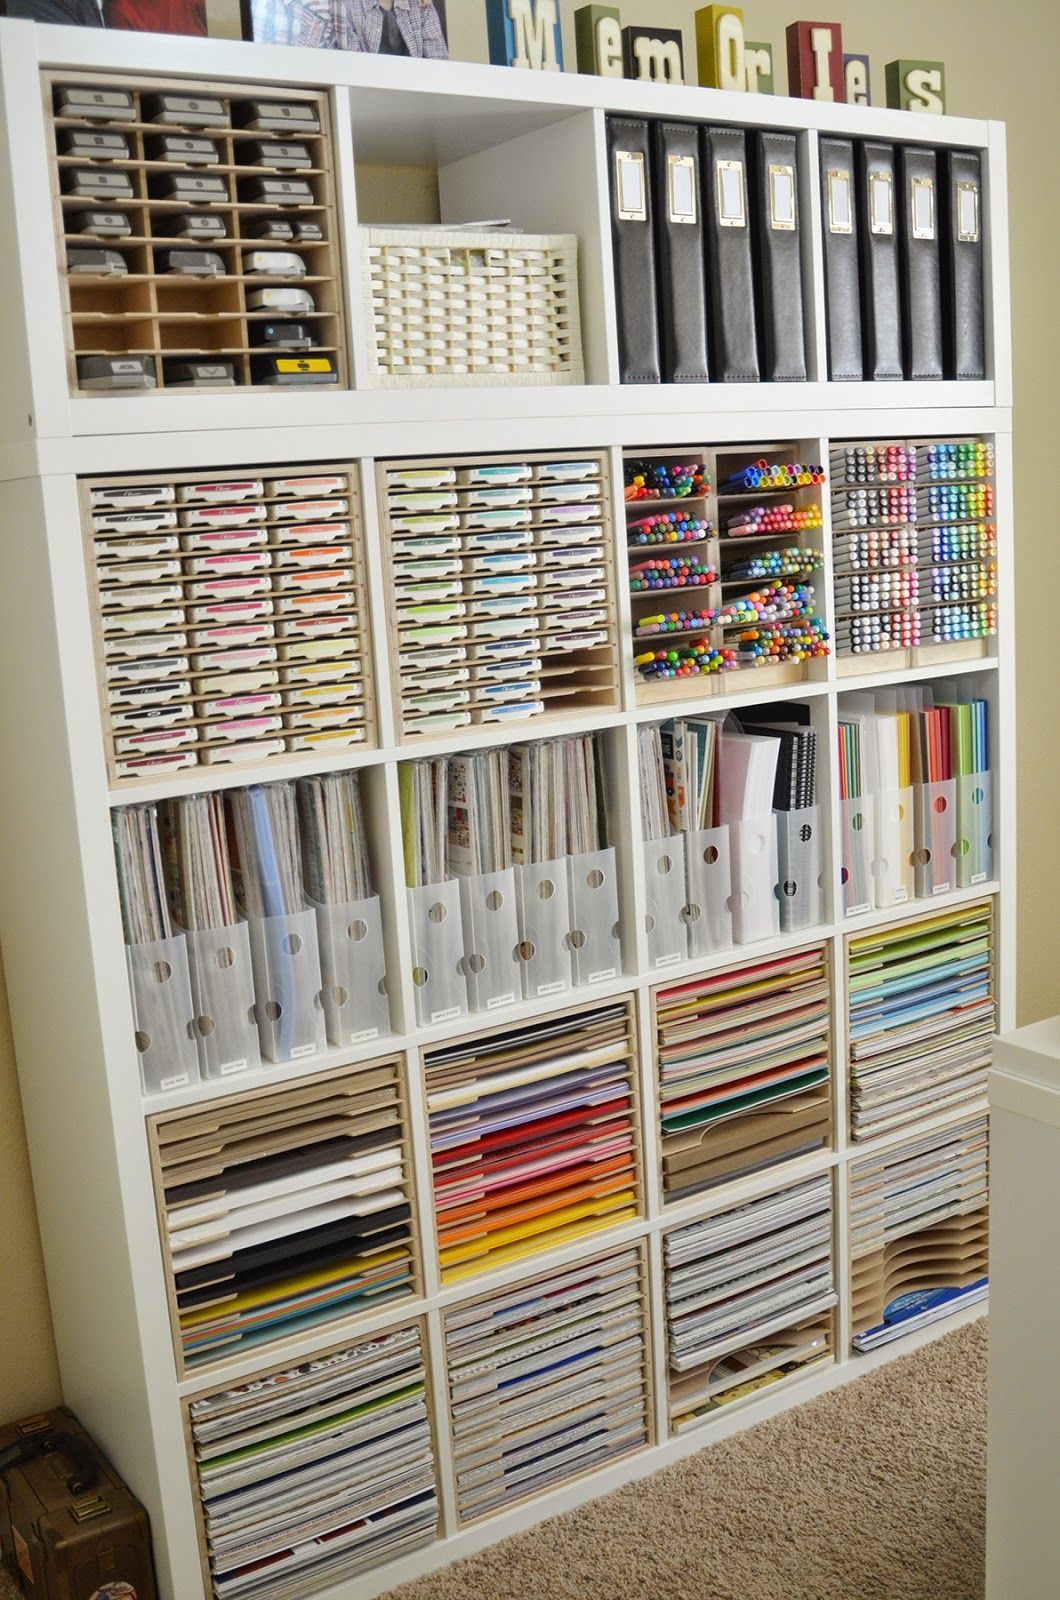 Paper Craft Storage in IKEA Shelving | Stamp pad, Markers and Cube